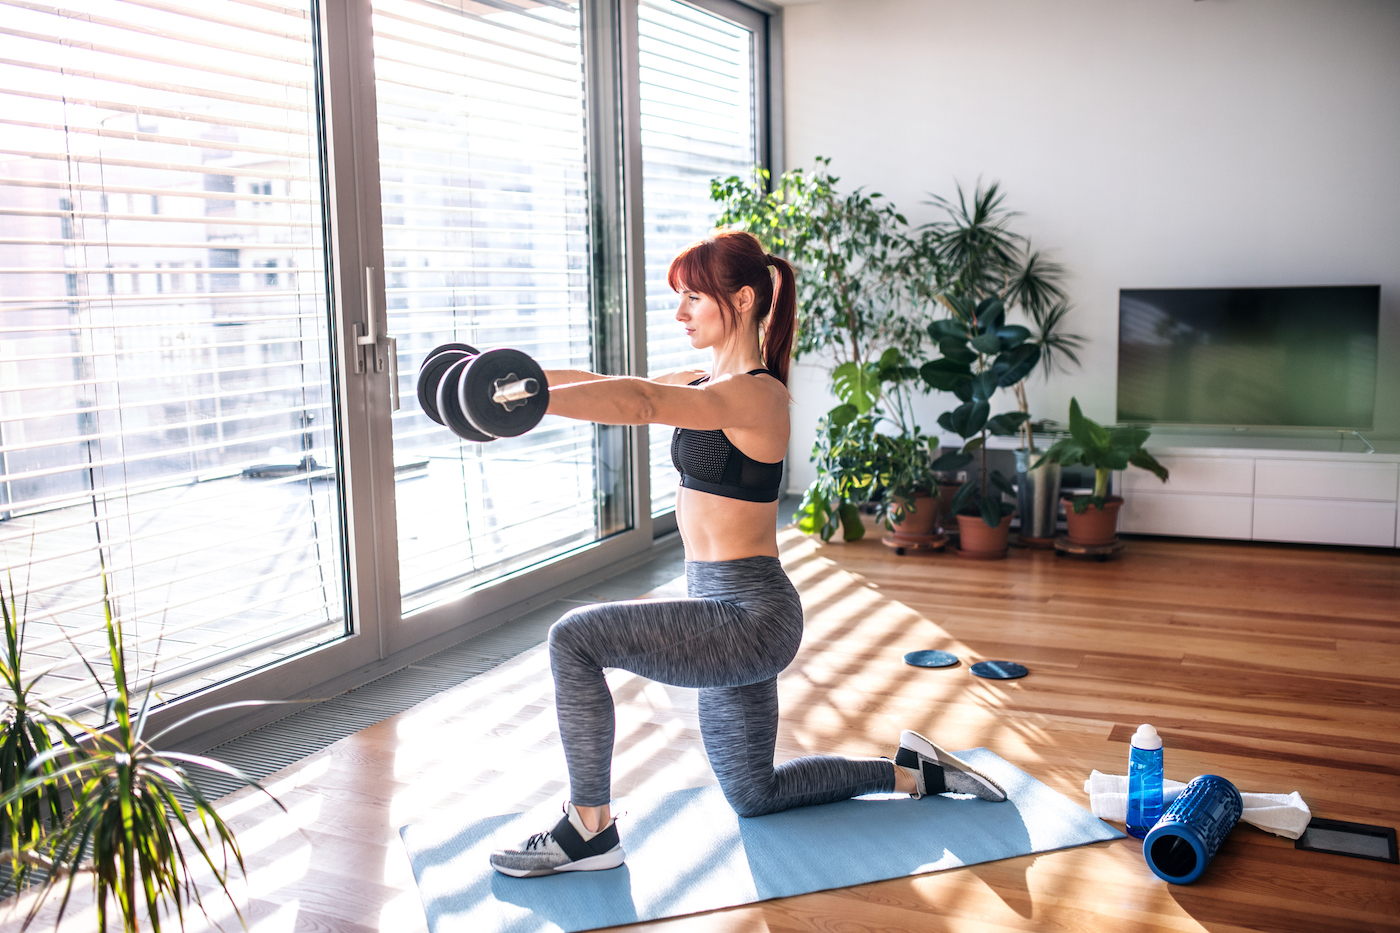 Thumbnail for 7 of the Best Adjustable Dumbbell Weights That Streamline Your At-Home Workouts